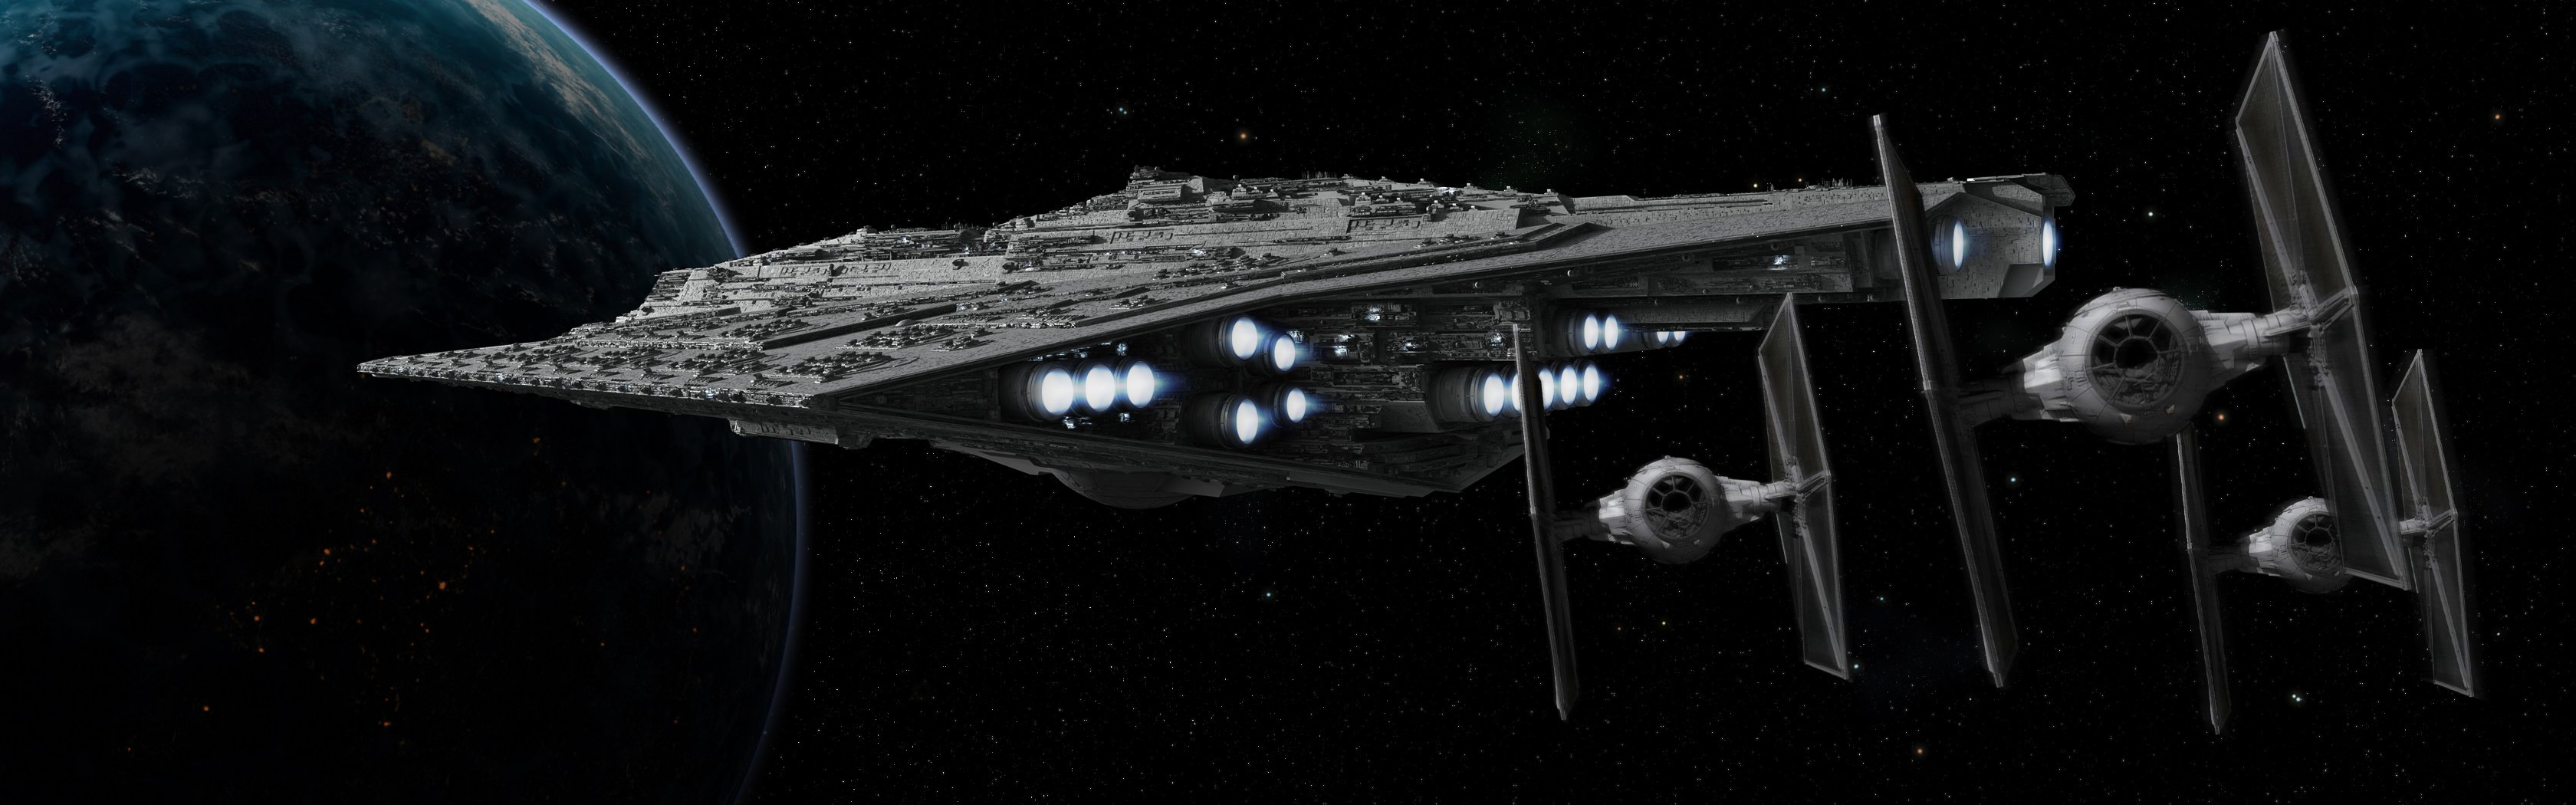 Star Wars Destroyer Fighters Computer Wallpapers Desktop Backgrounds 3360x1050